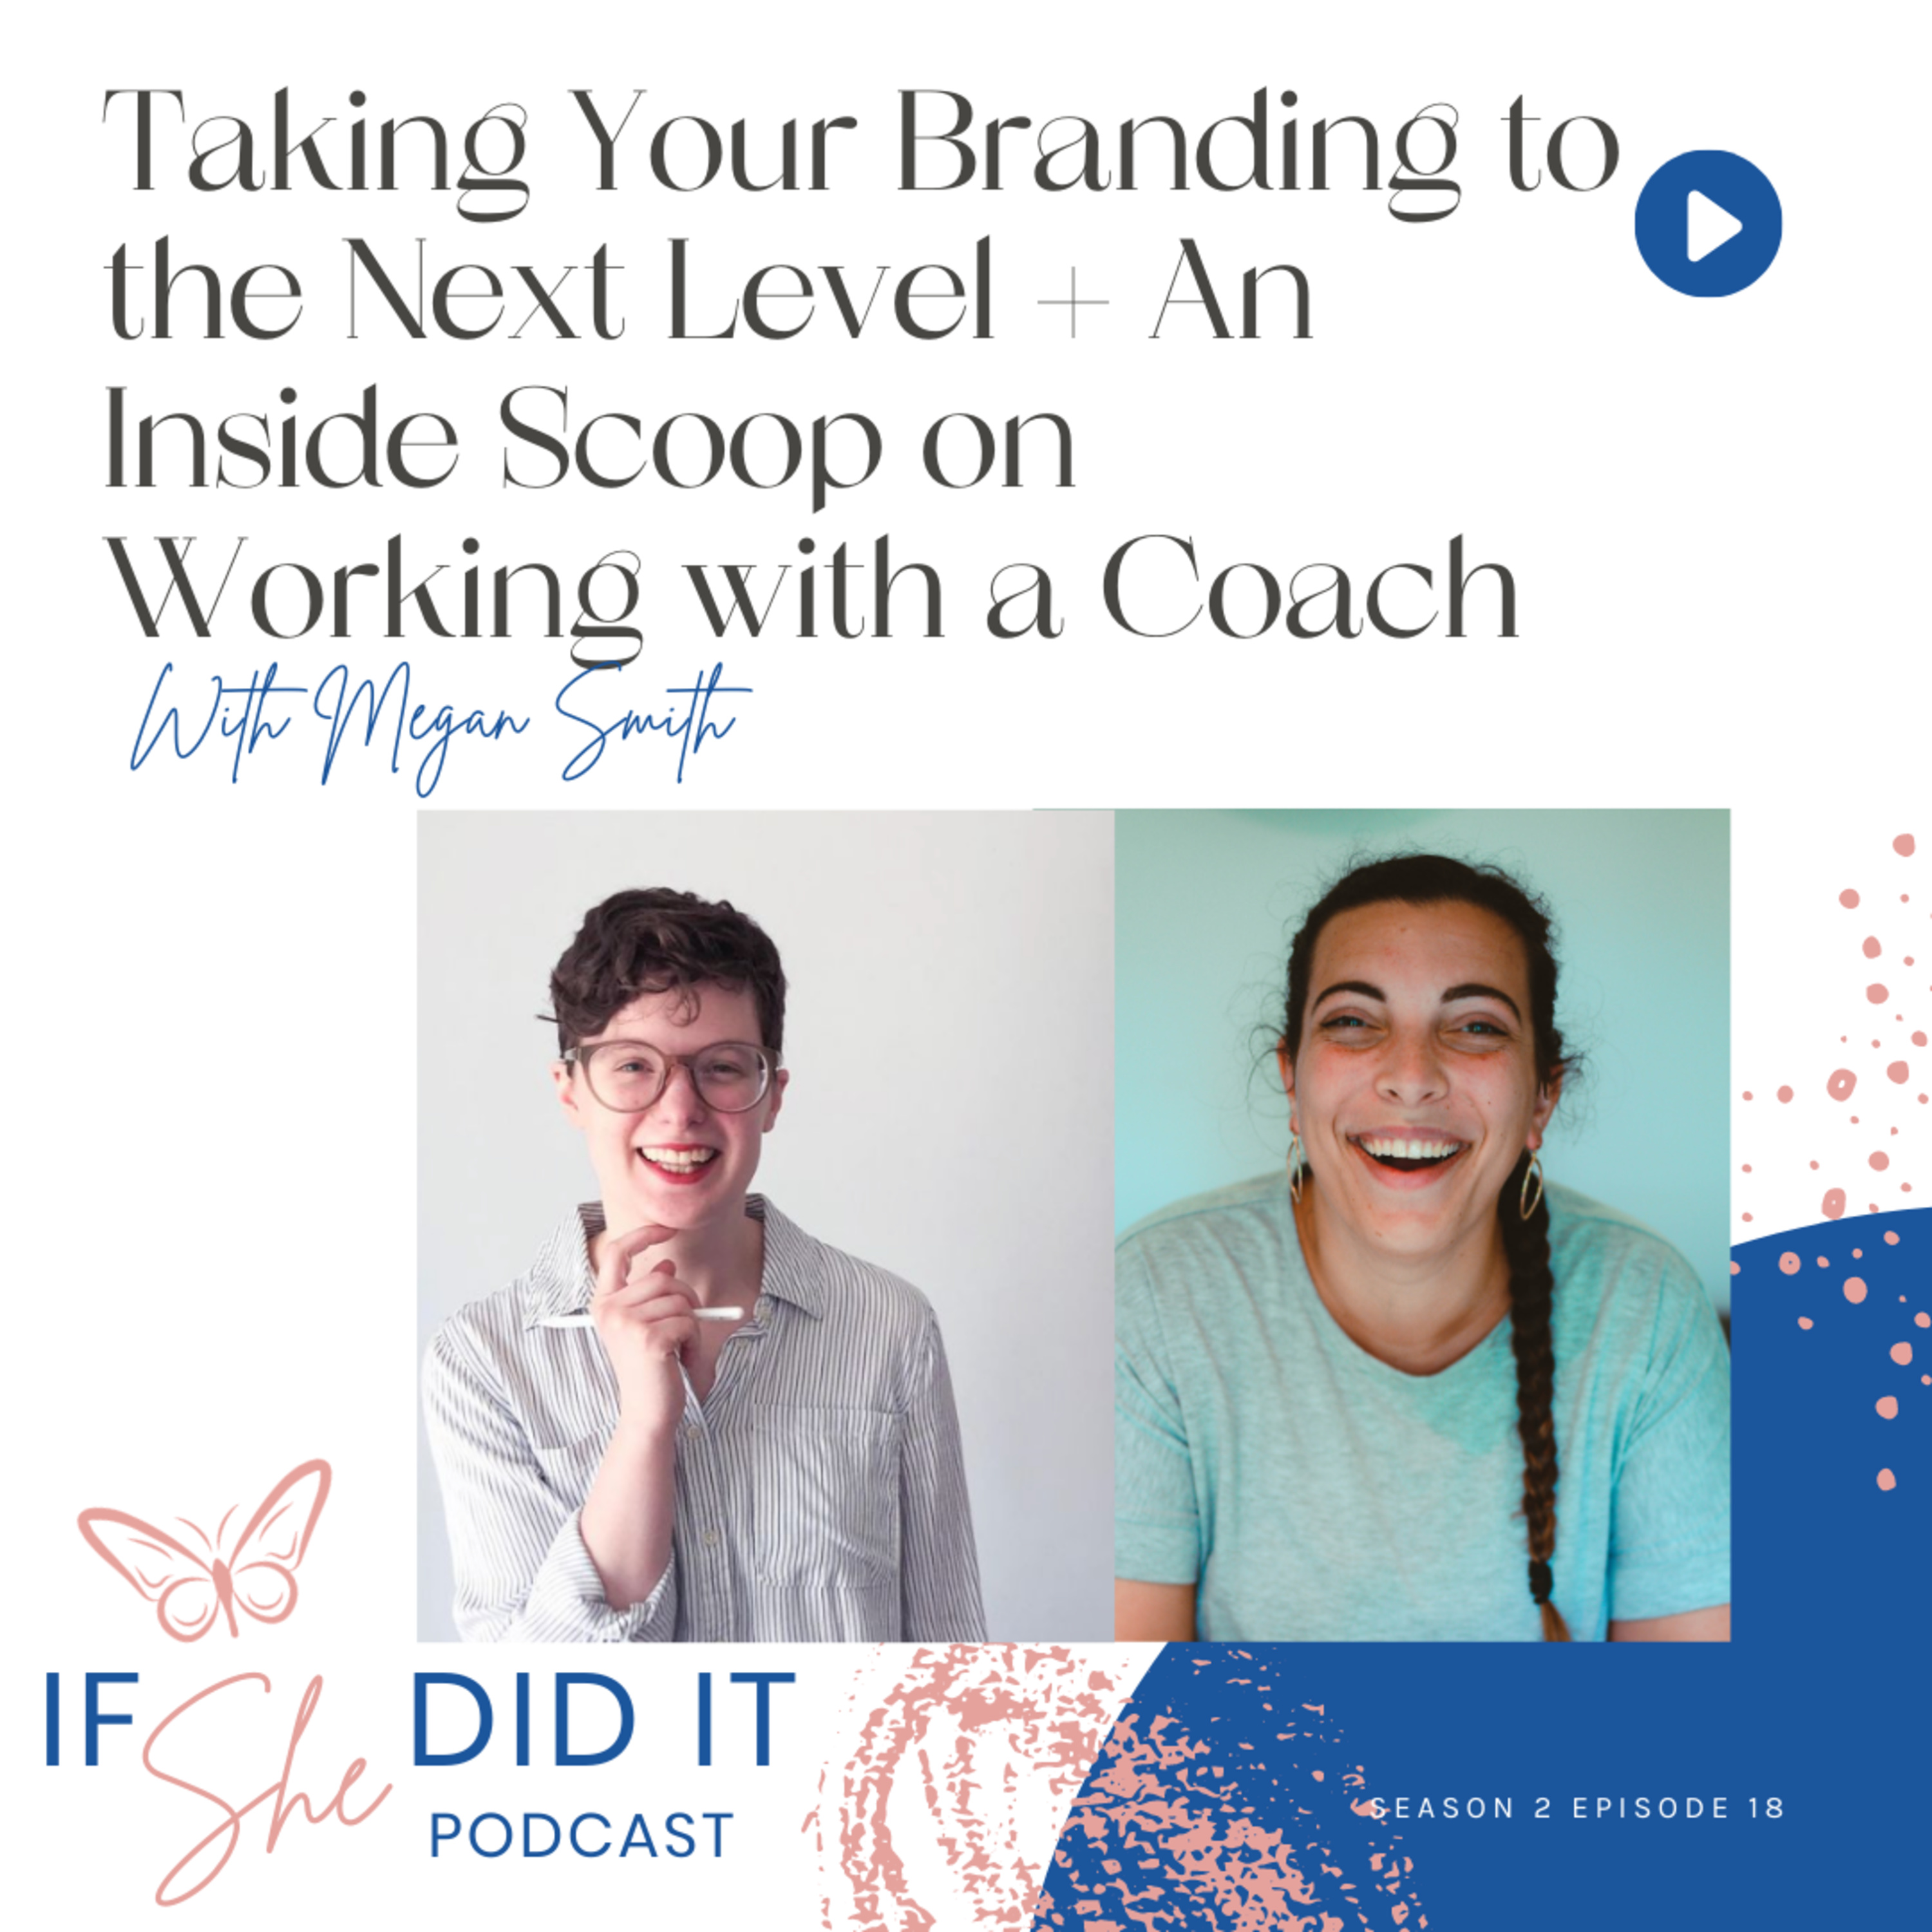 Taking Your Branding to the Next Level + An Inside Scoop on Working with a Coach